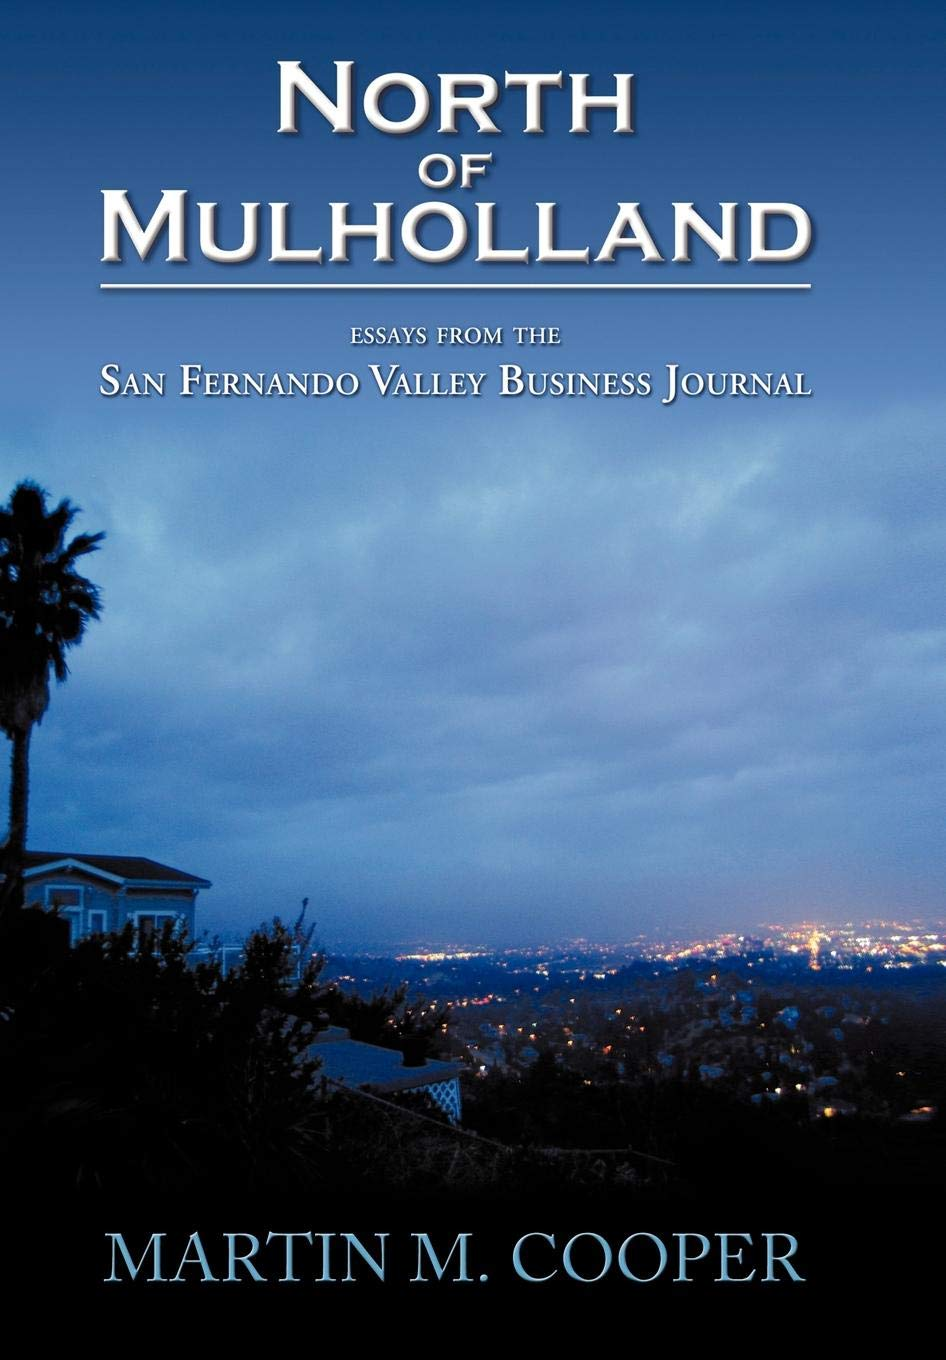 North of Mulholland:Essays from the San Fernando Valley Business Journal